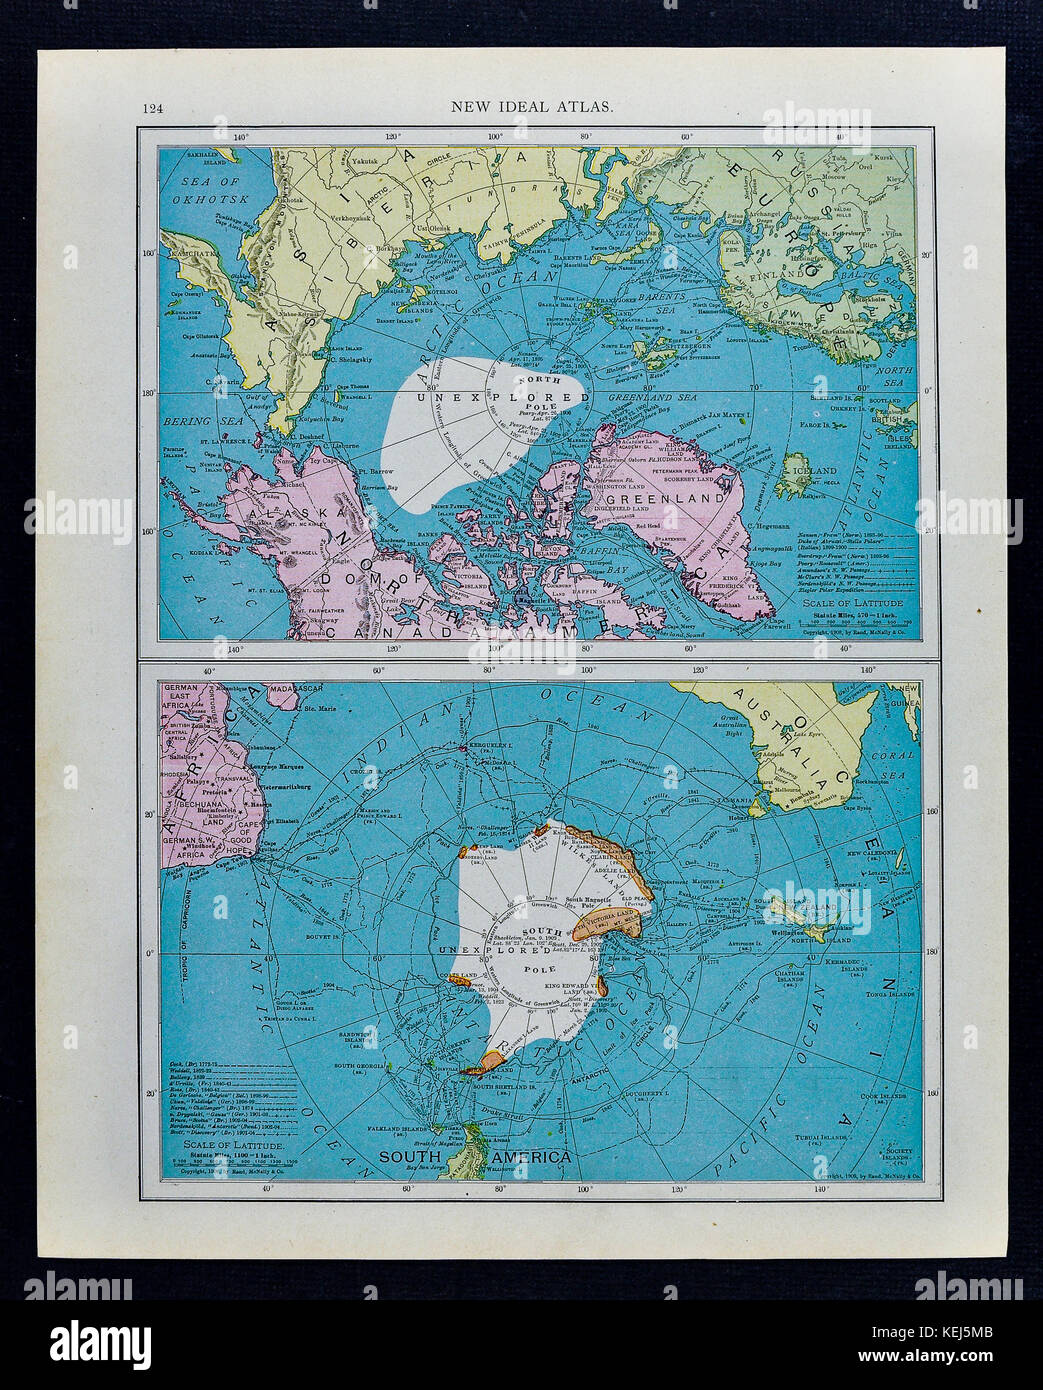 McNally Antique Map 1911 - South Pole Antarctica & North Pole Arctic Ocean - Stock Image